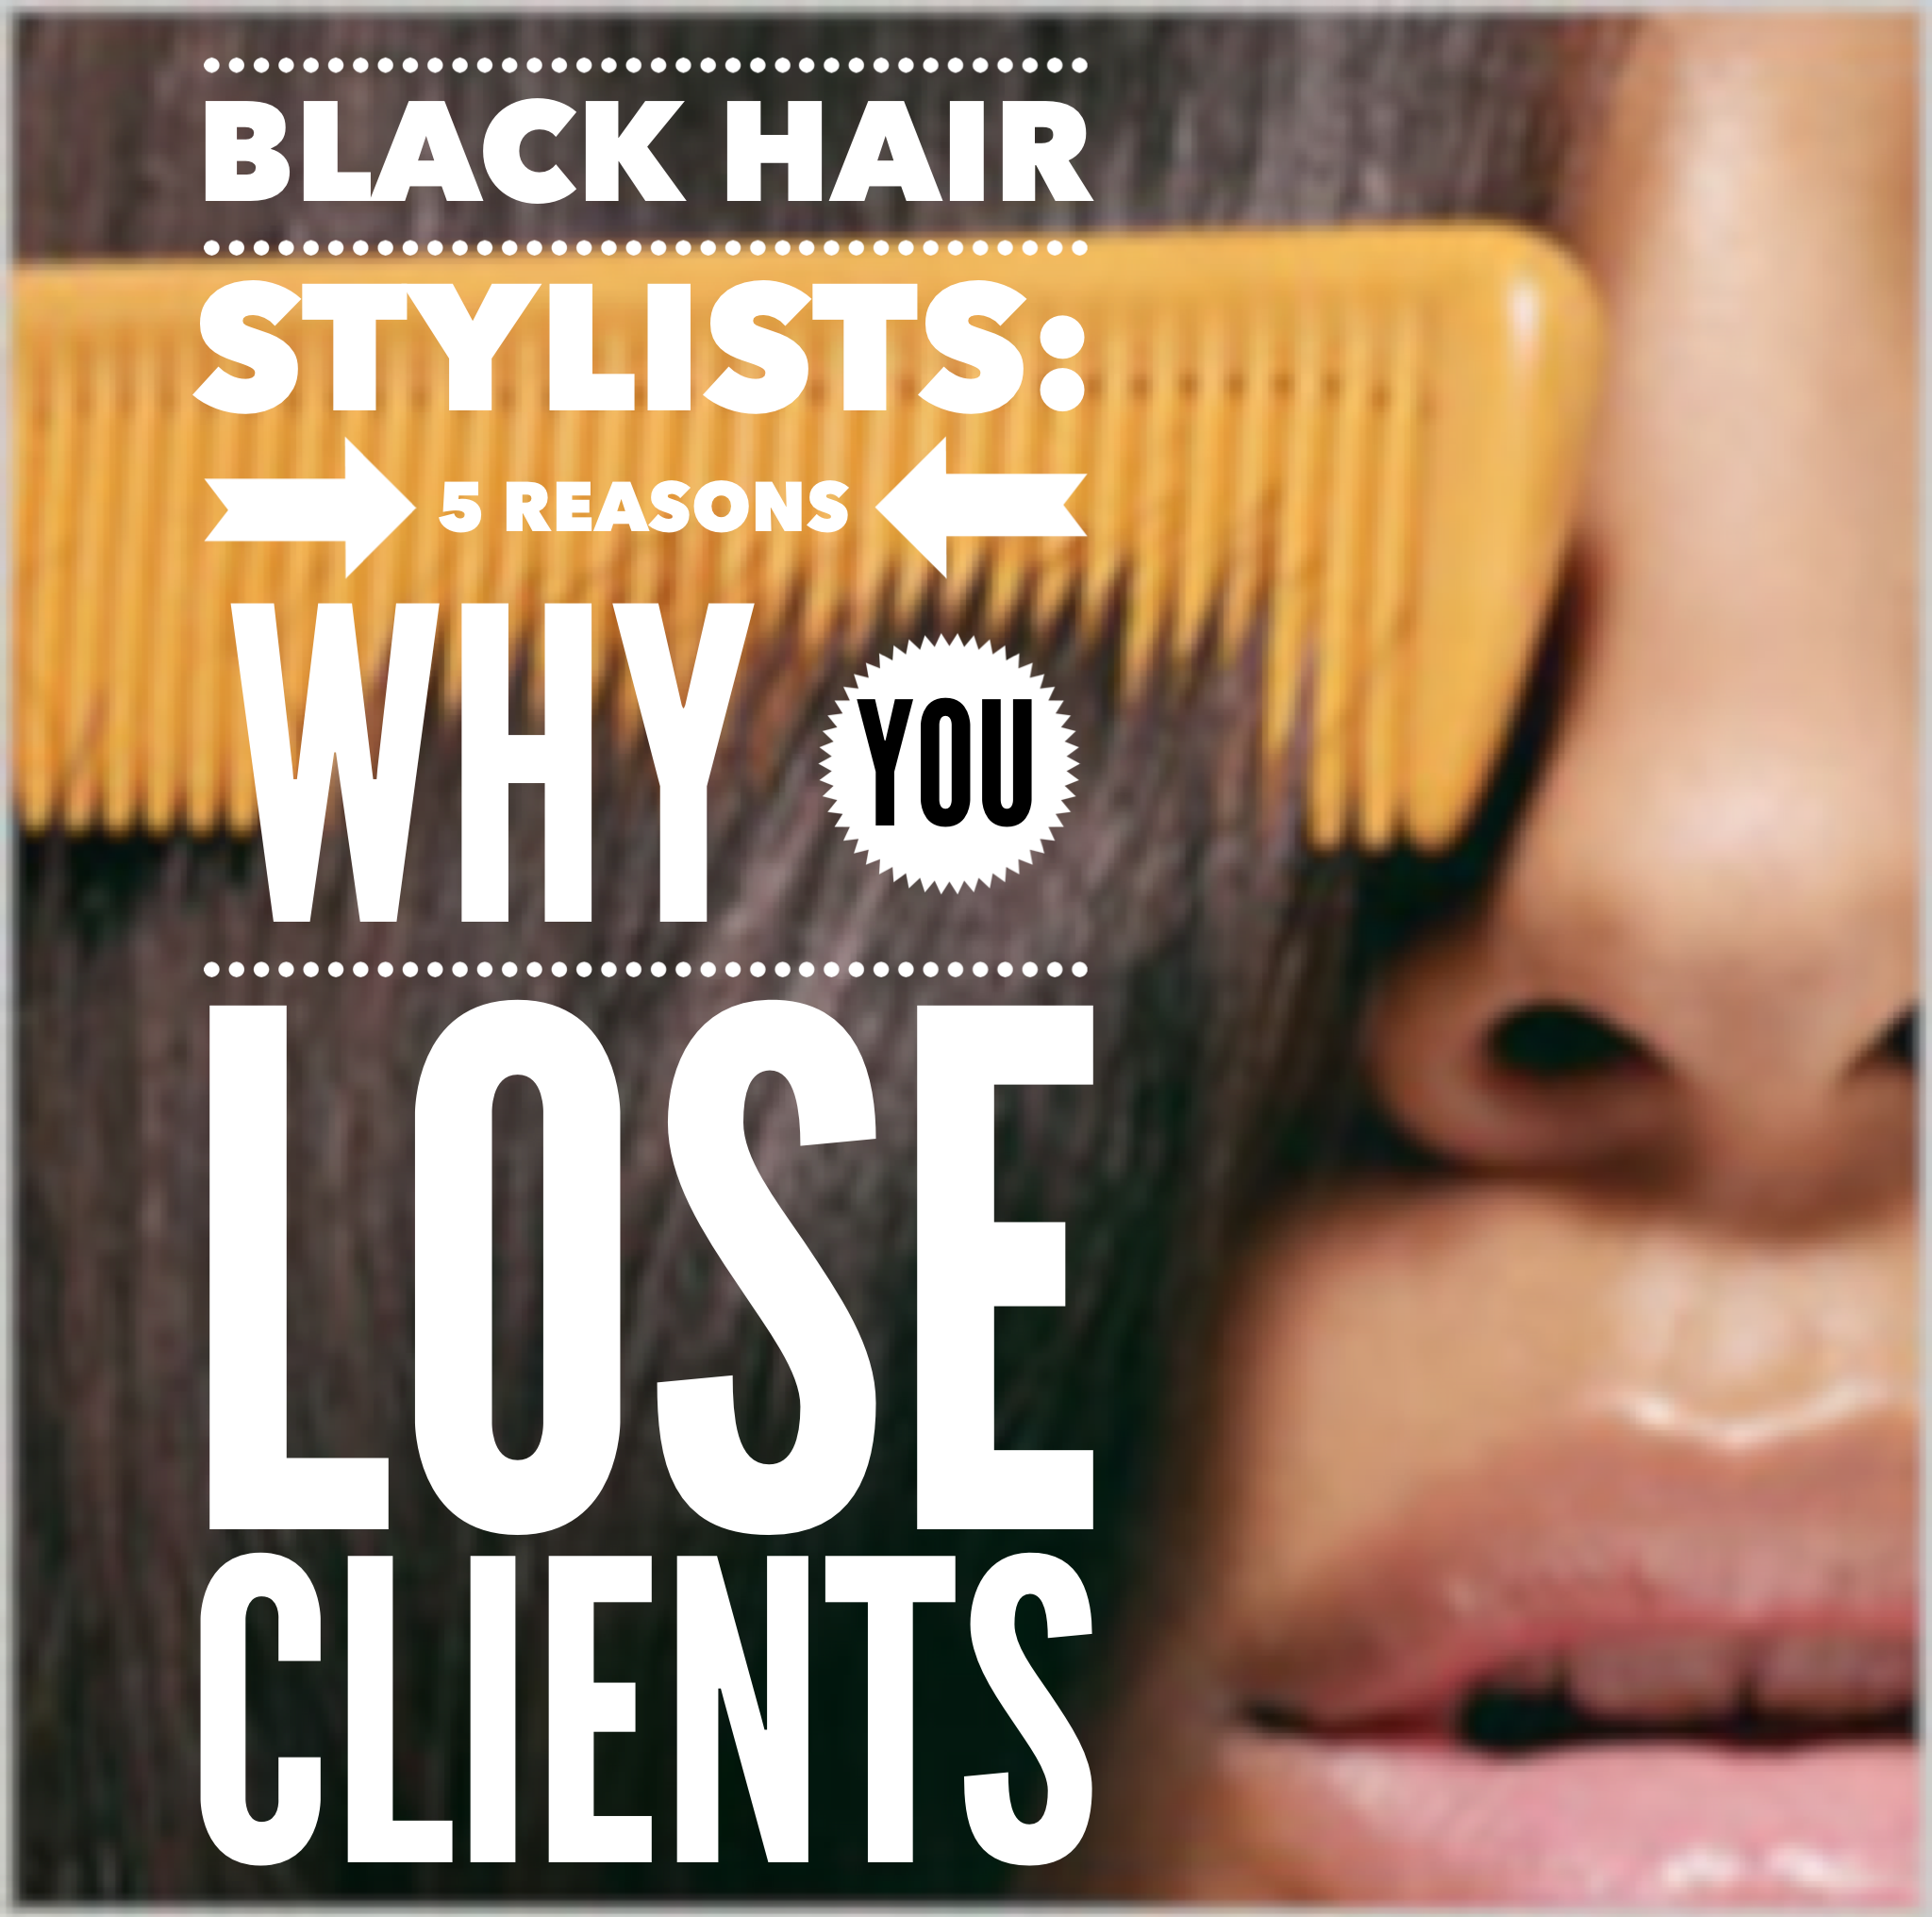 black hair stylists